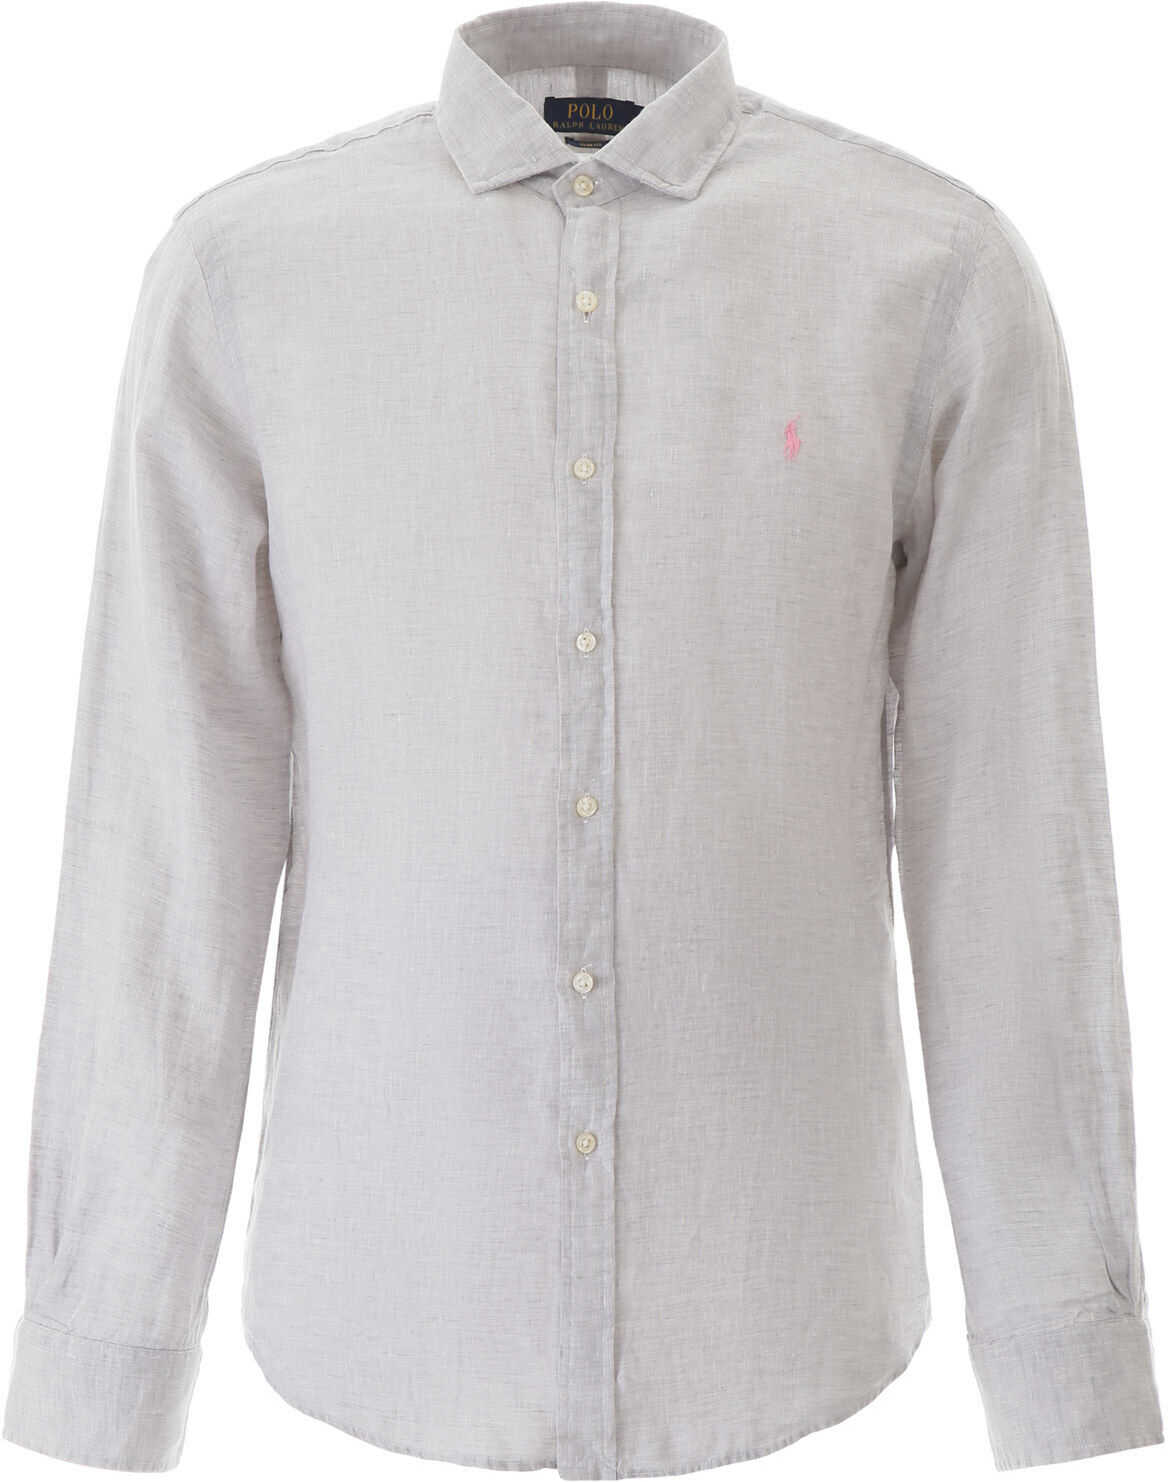 Ralph Lauren Linen Shirt GREY